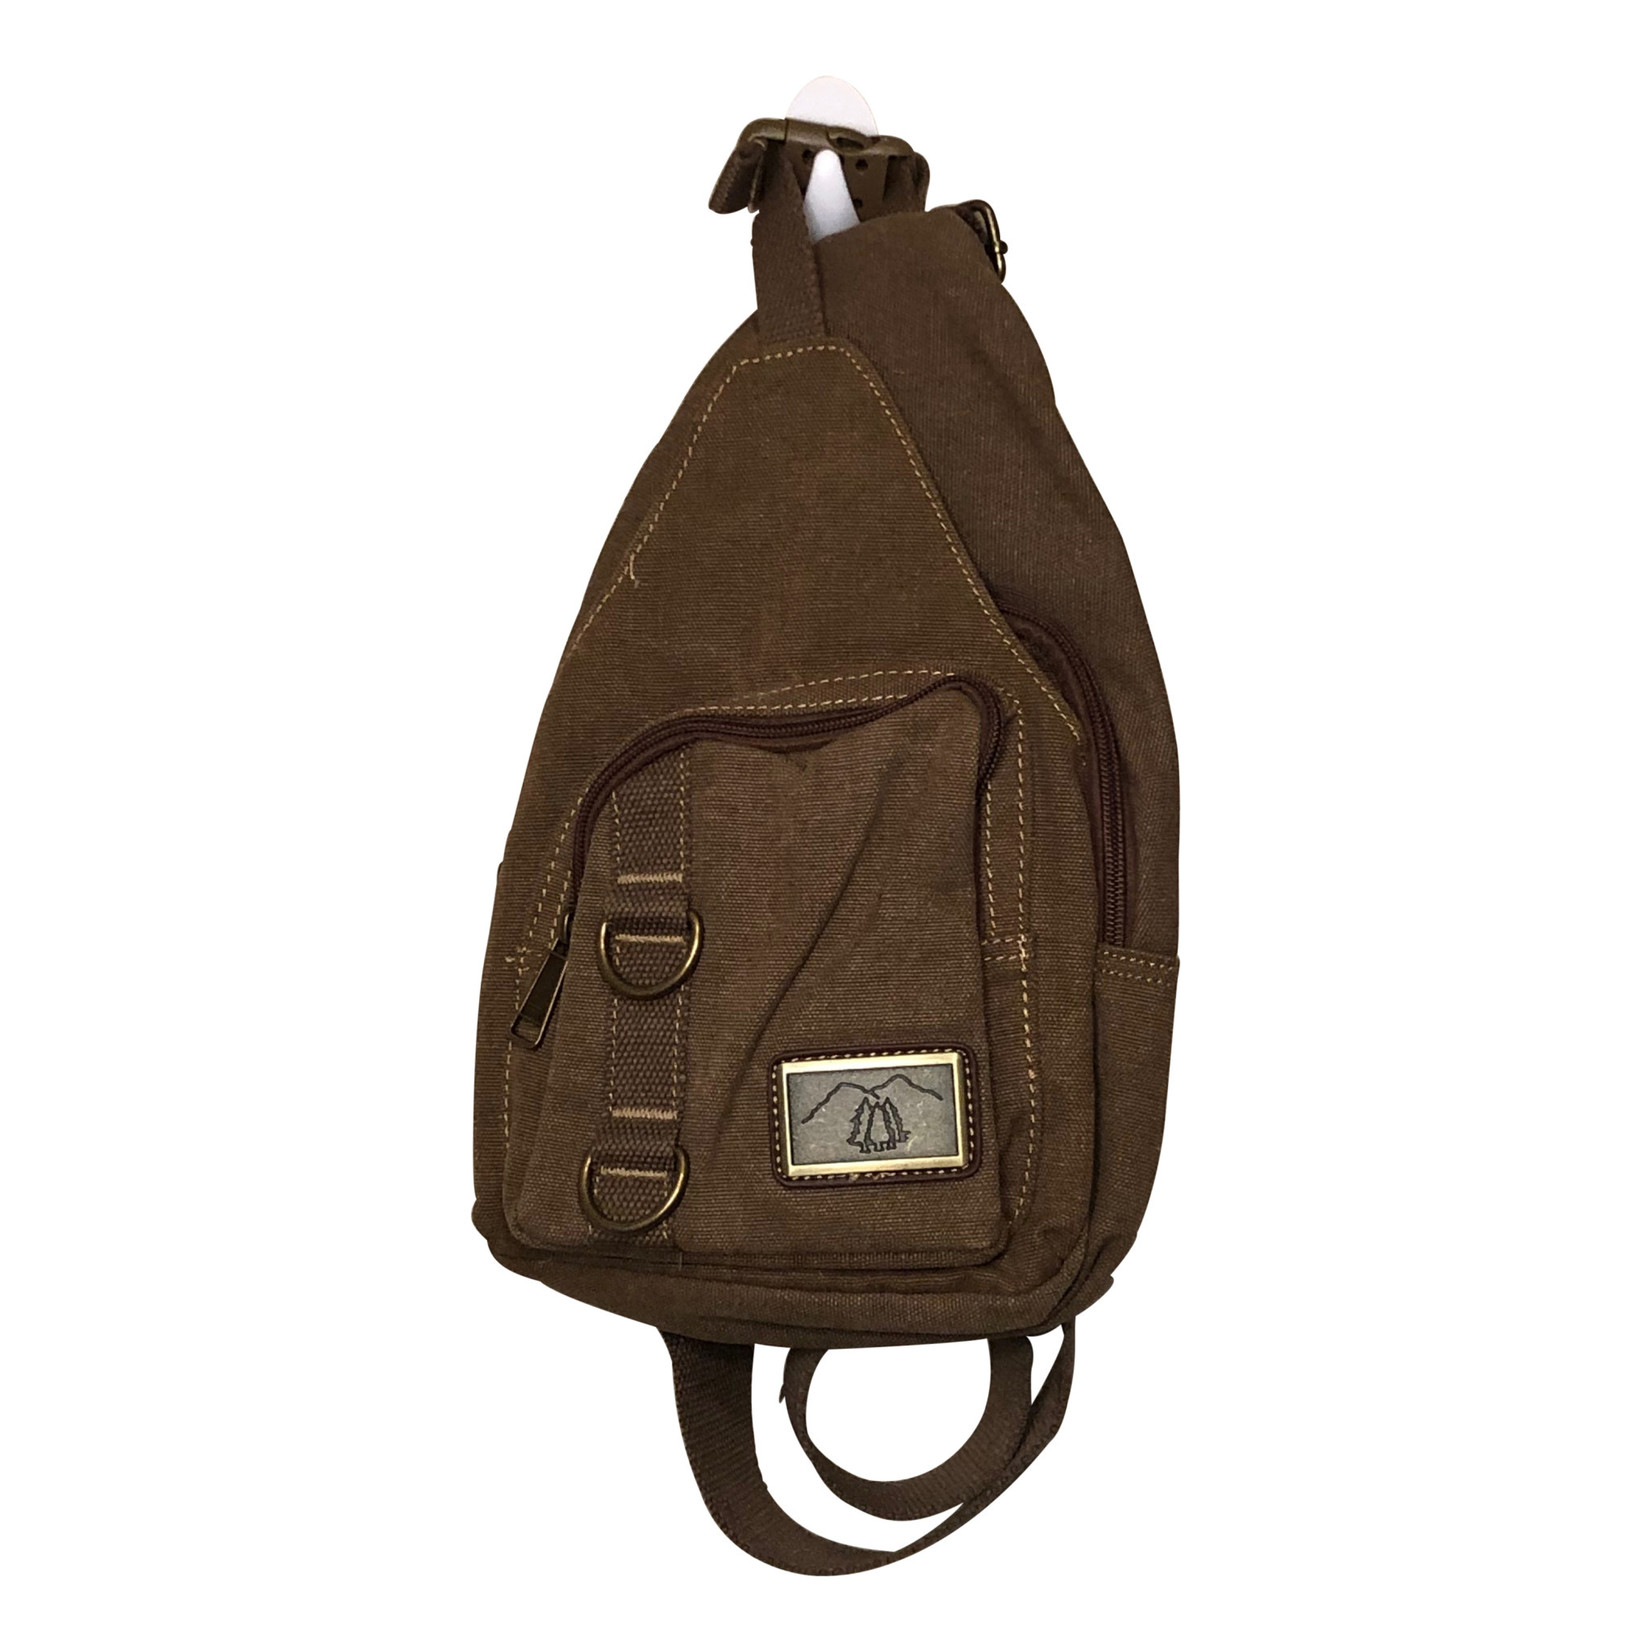 Triple Tree Canvas 3978 Brown Canvas Sling